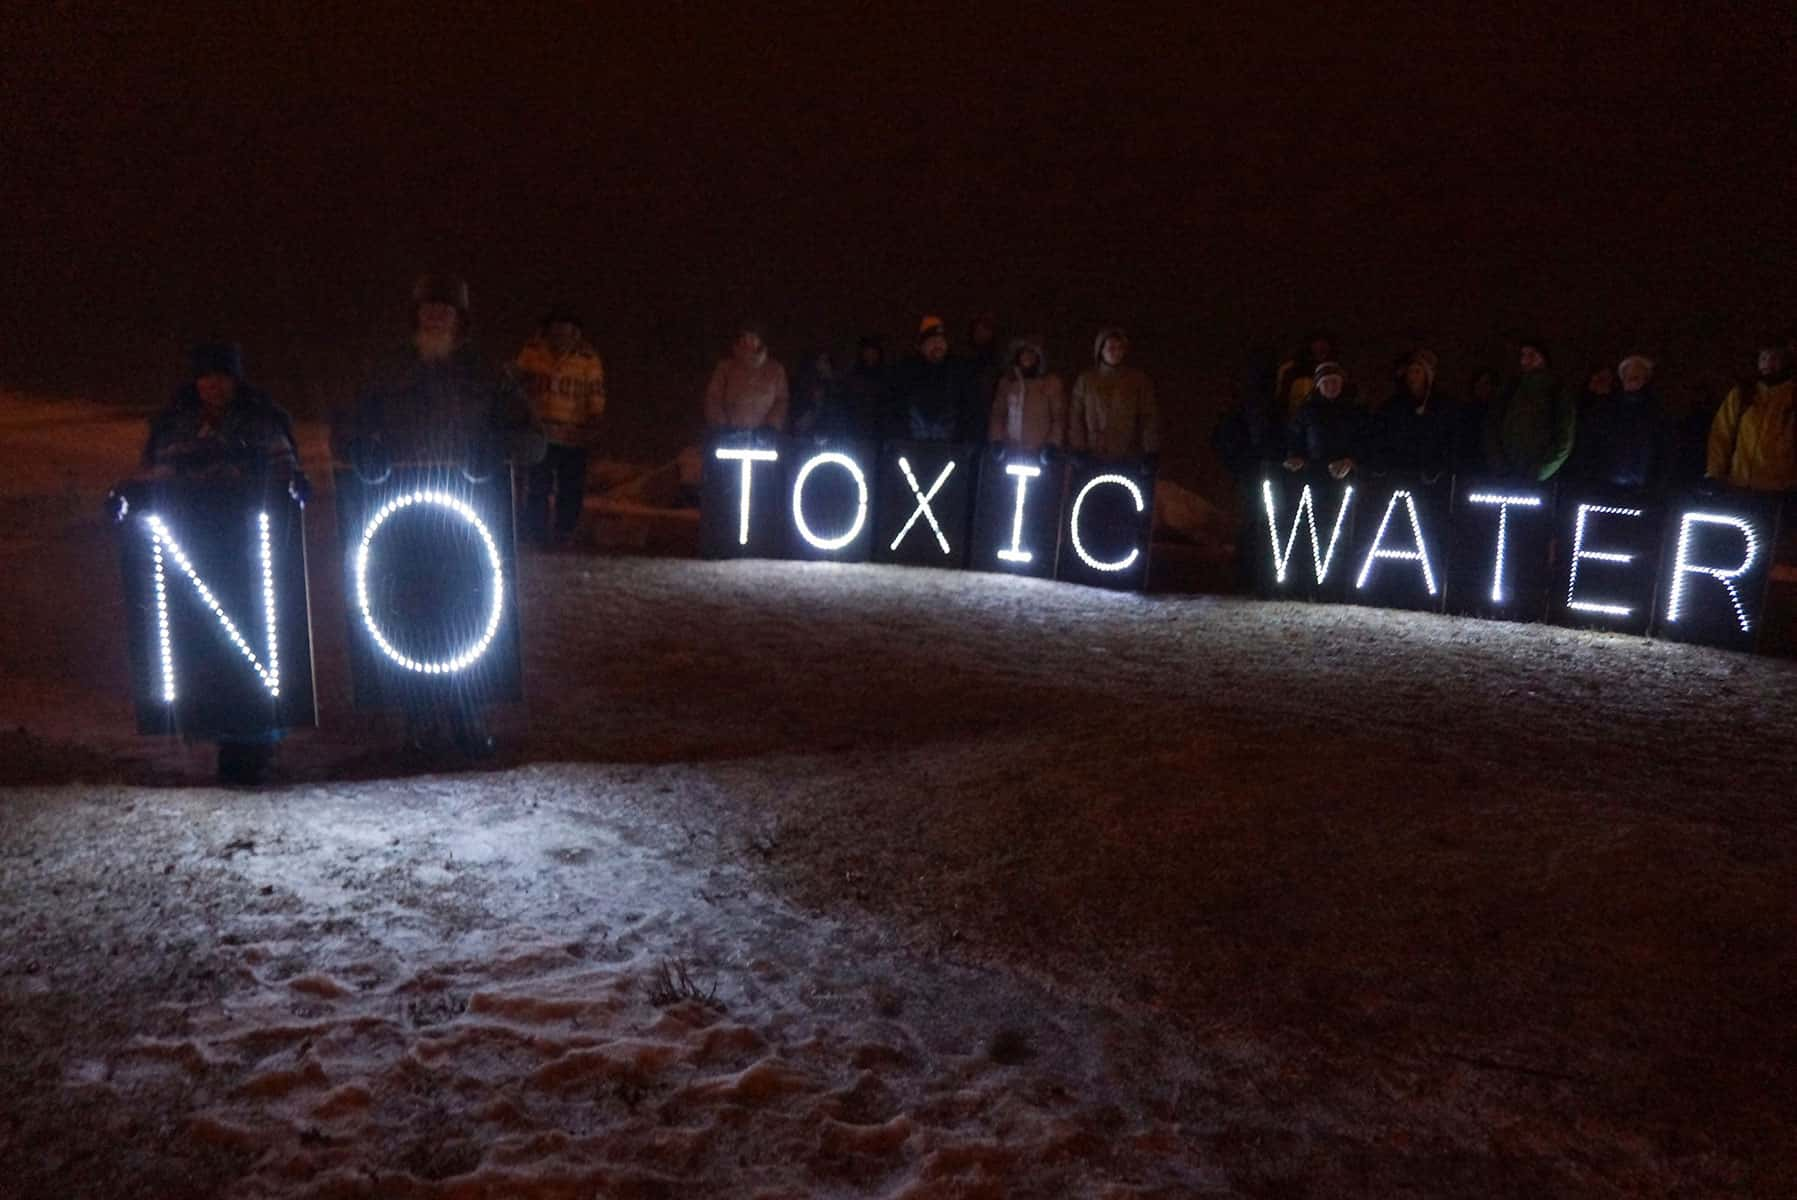 01_012616_ToxicWater_257